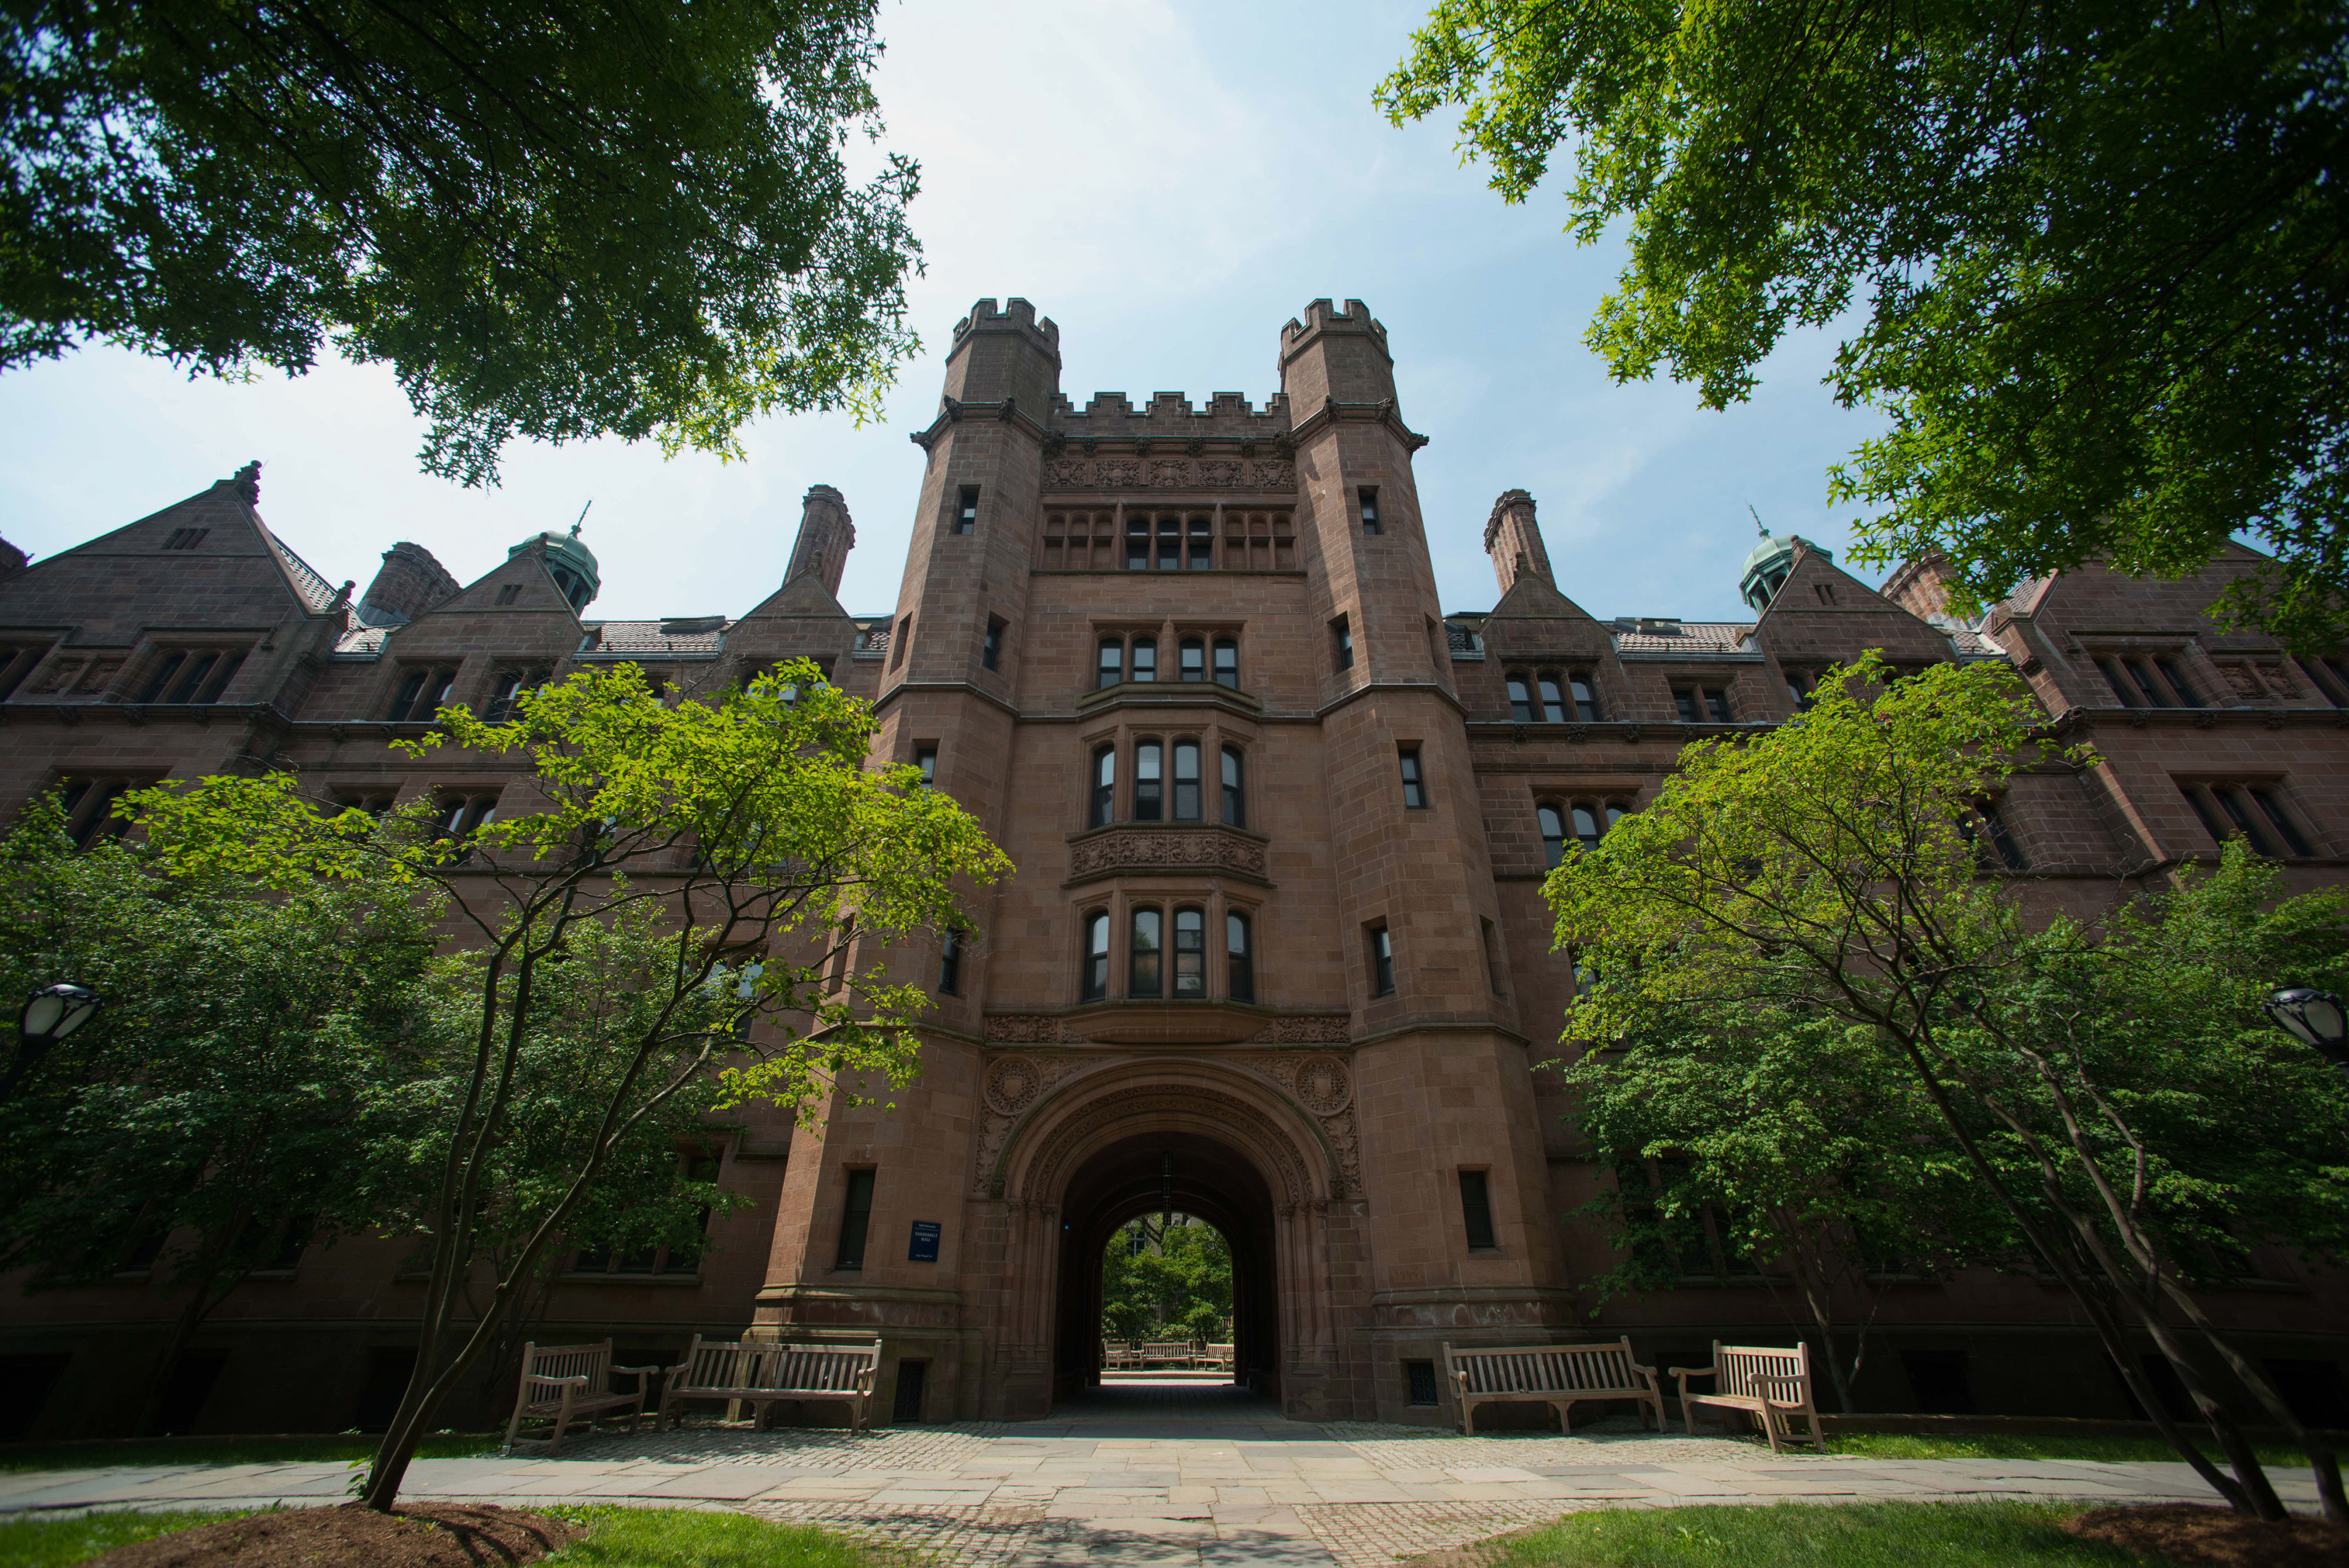 The campus of Yale University in New Haven, CT, U.S., on Friday, June 12, 2015.